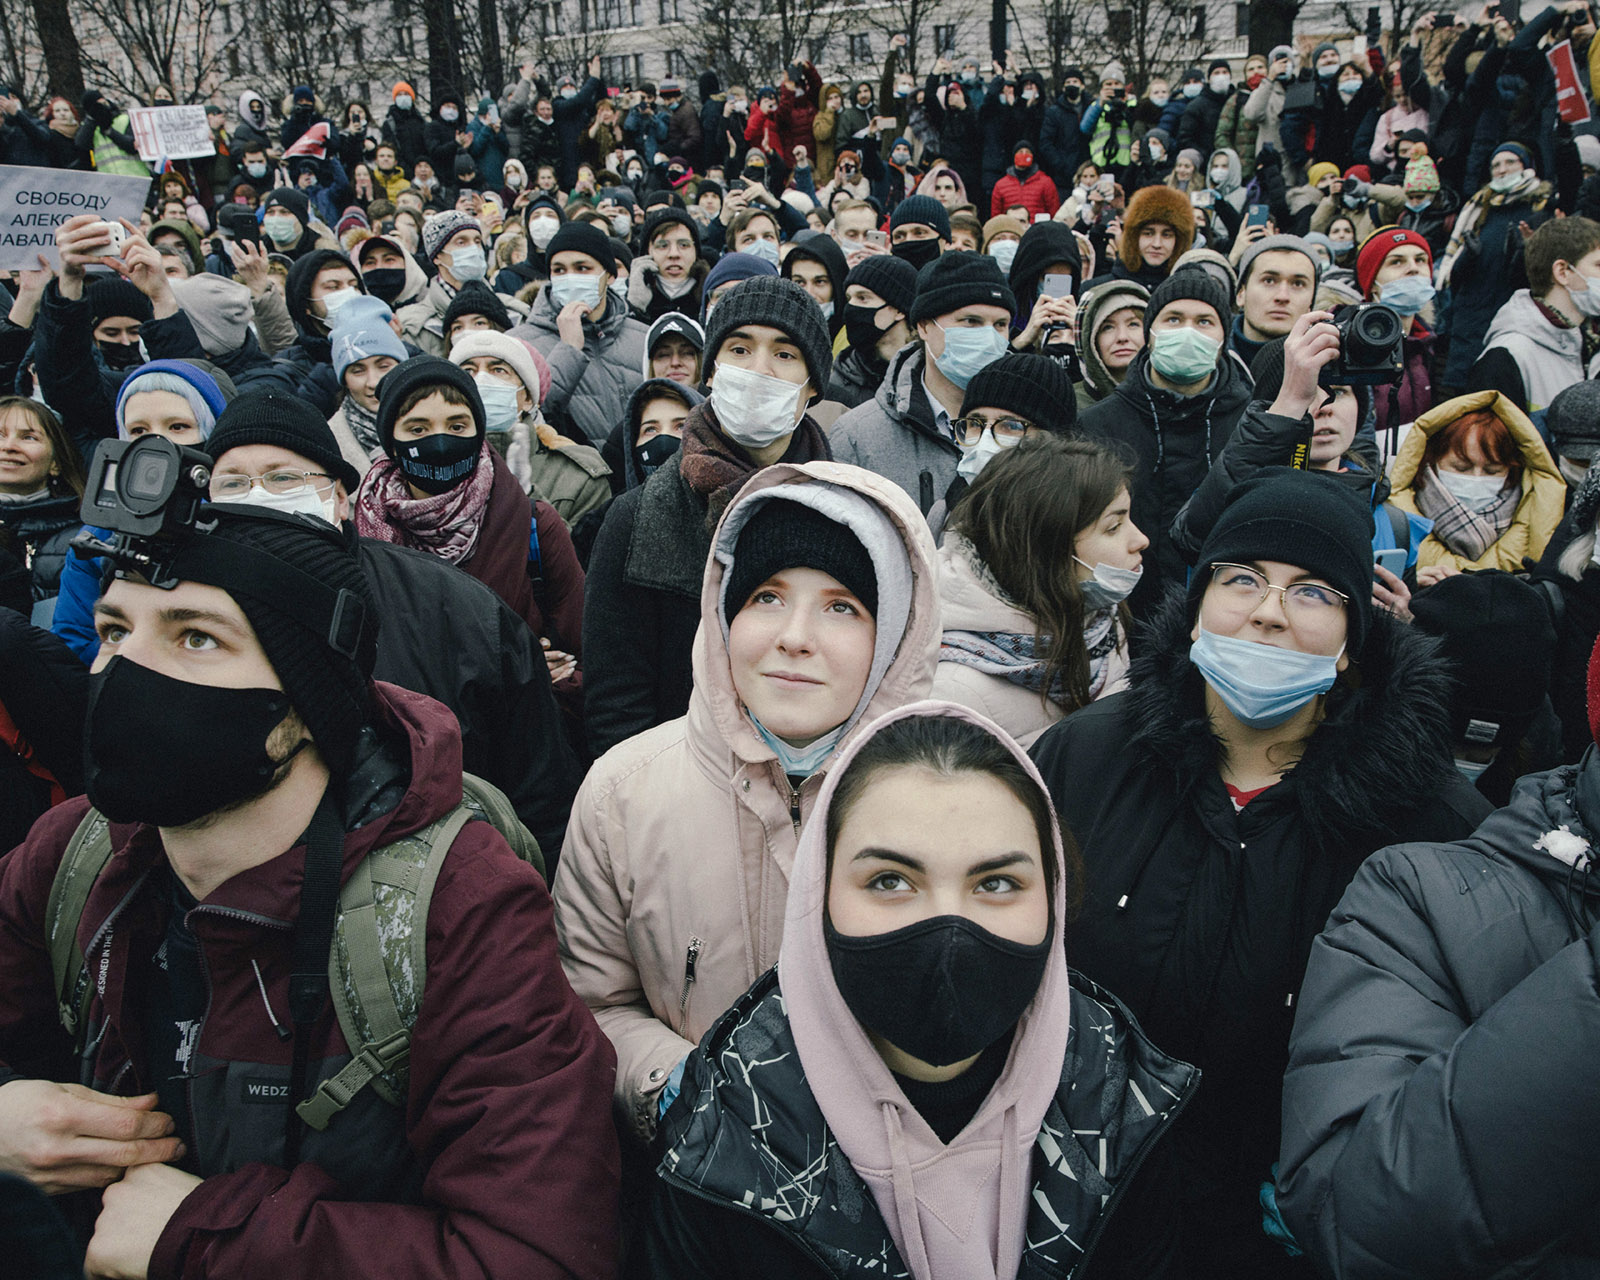 Protesters at a demonstration in support of Russian opposition leader Alexei Navalny